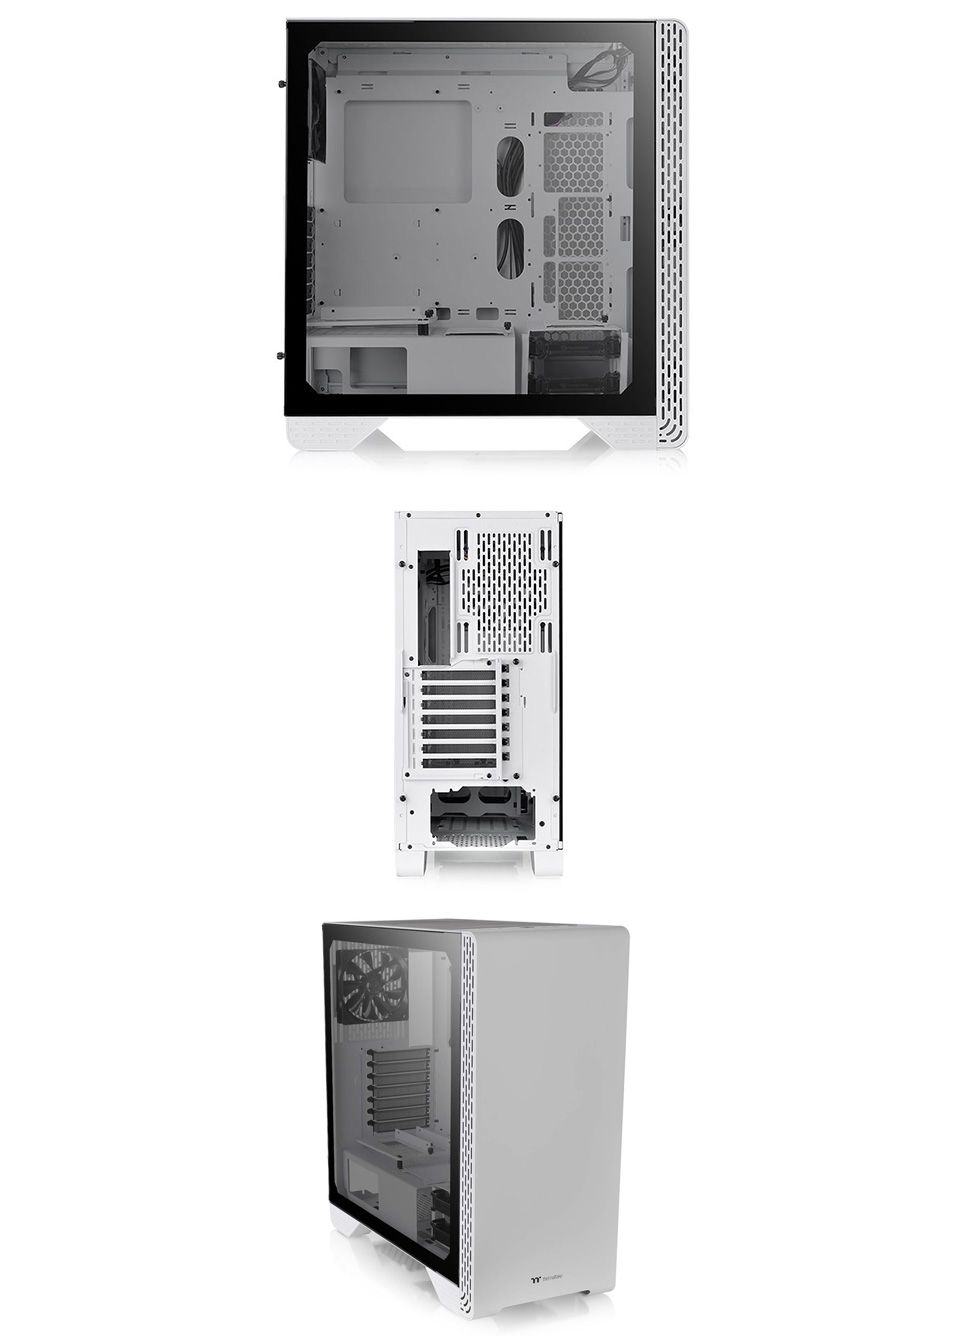 Thermaltake S300 Tempered Glass Mid-Tower Case Snow Edition product